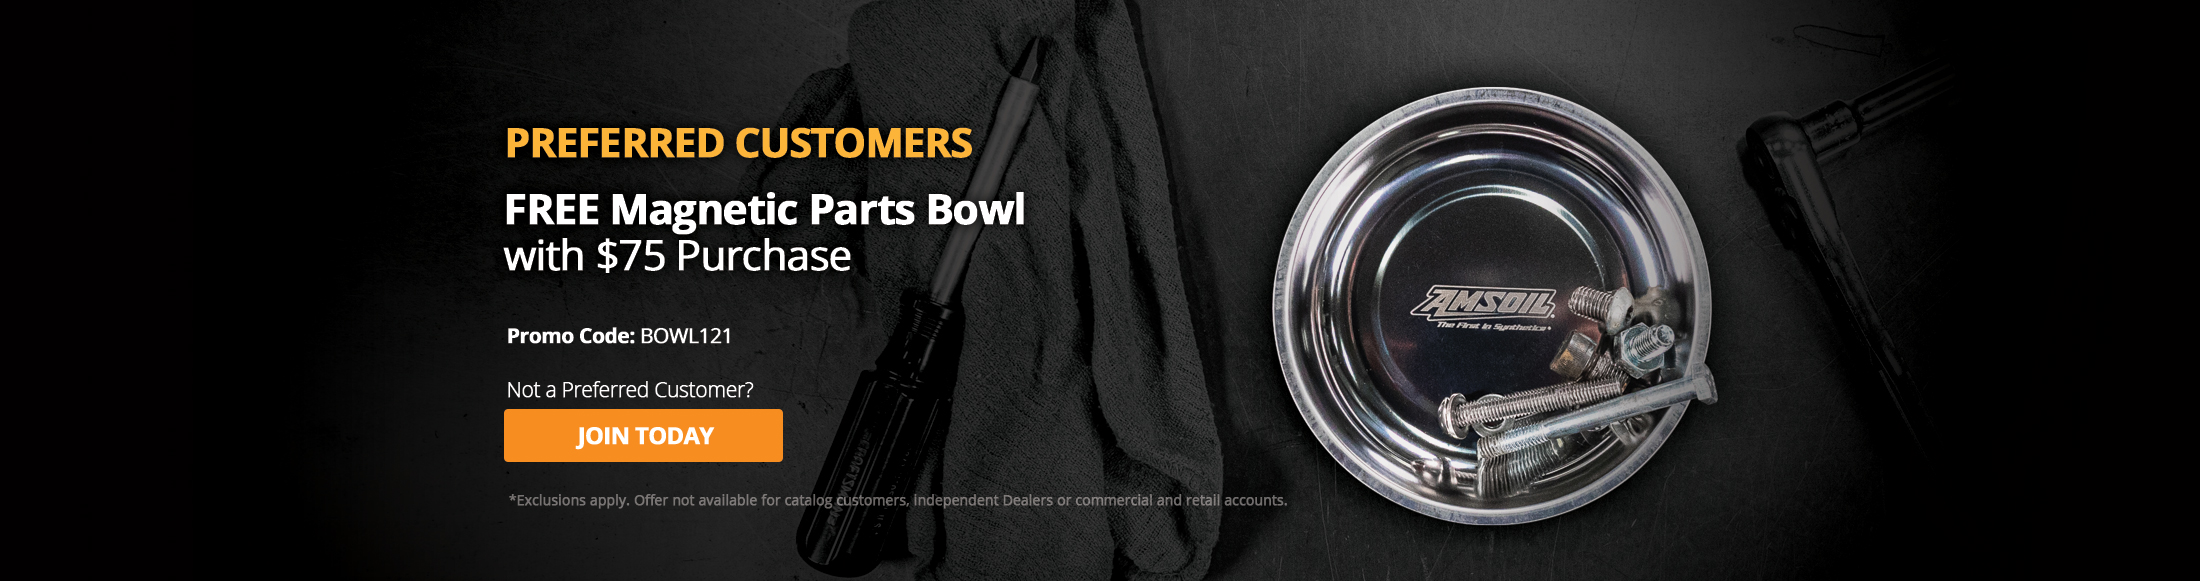 Free Magnetic Parts Bowl with $75 Purchase